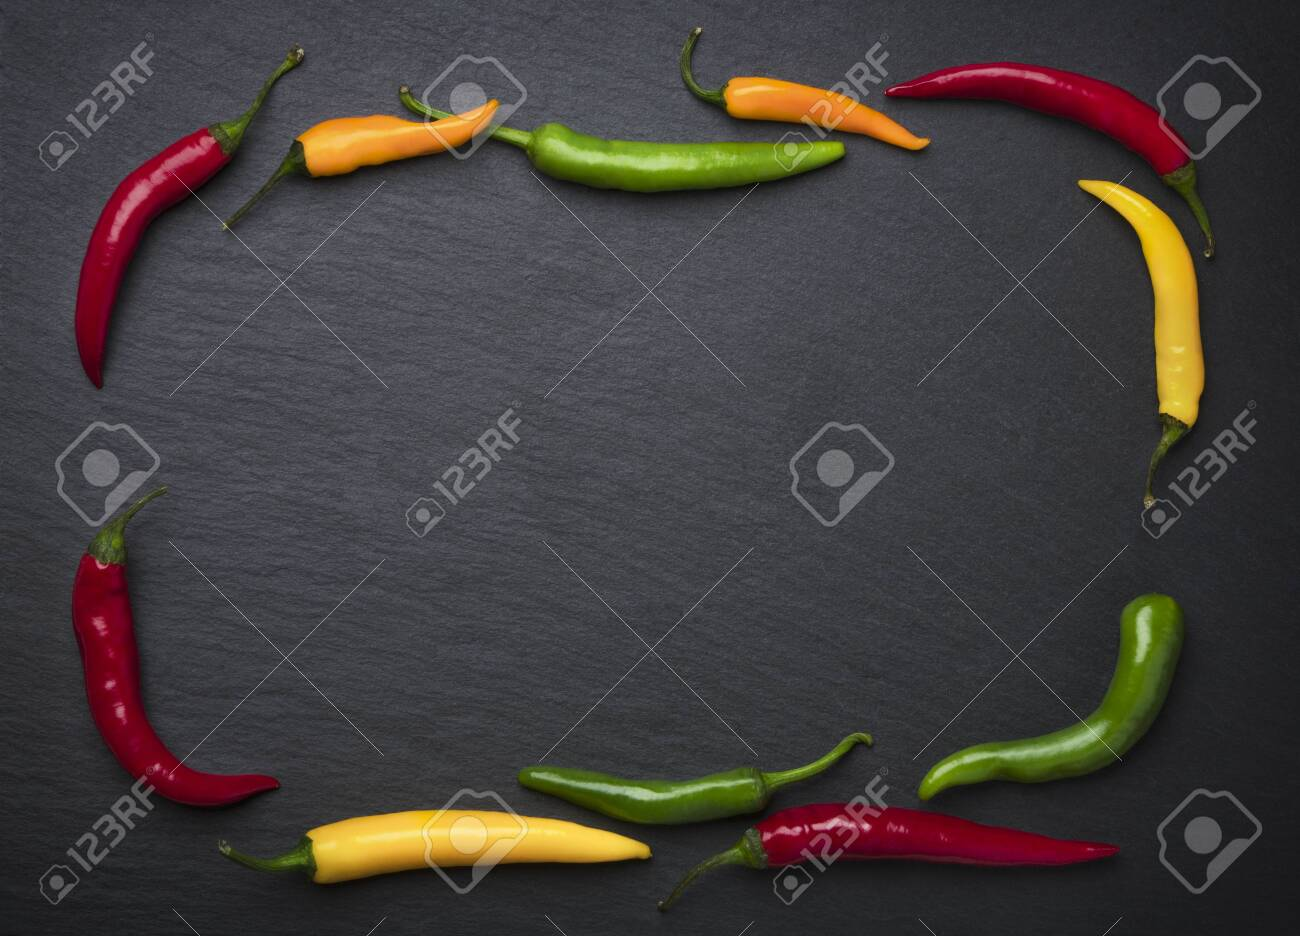 Slate framed by colorful chili peppers. - 131593499